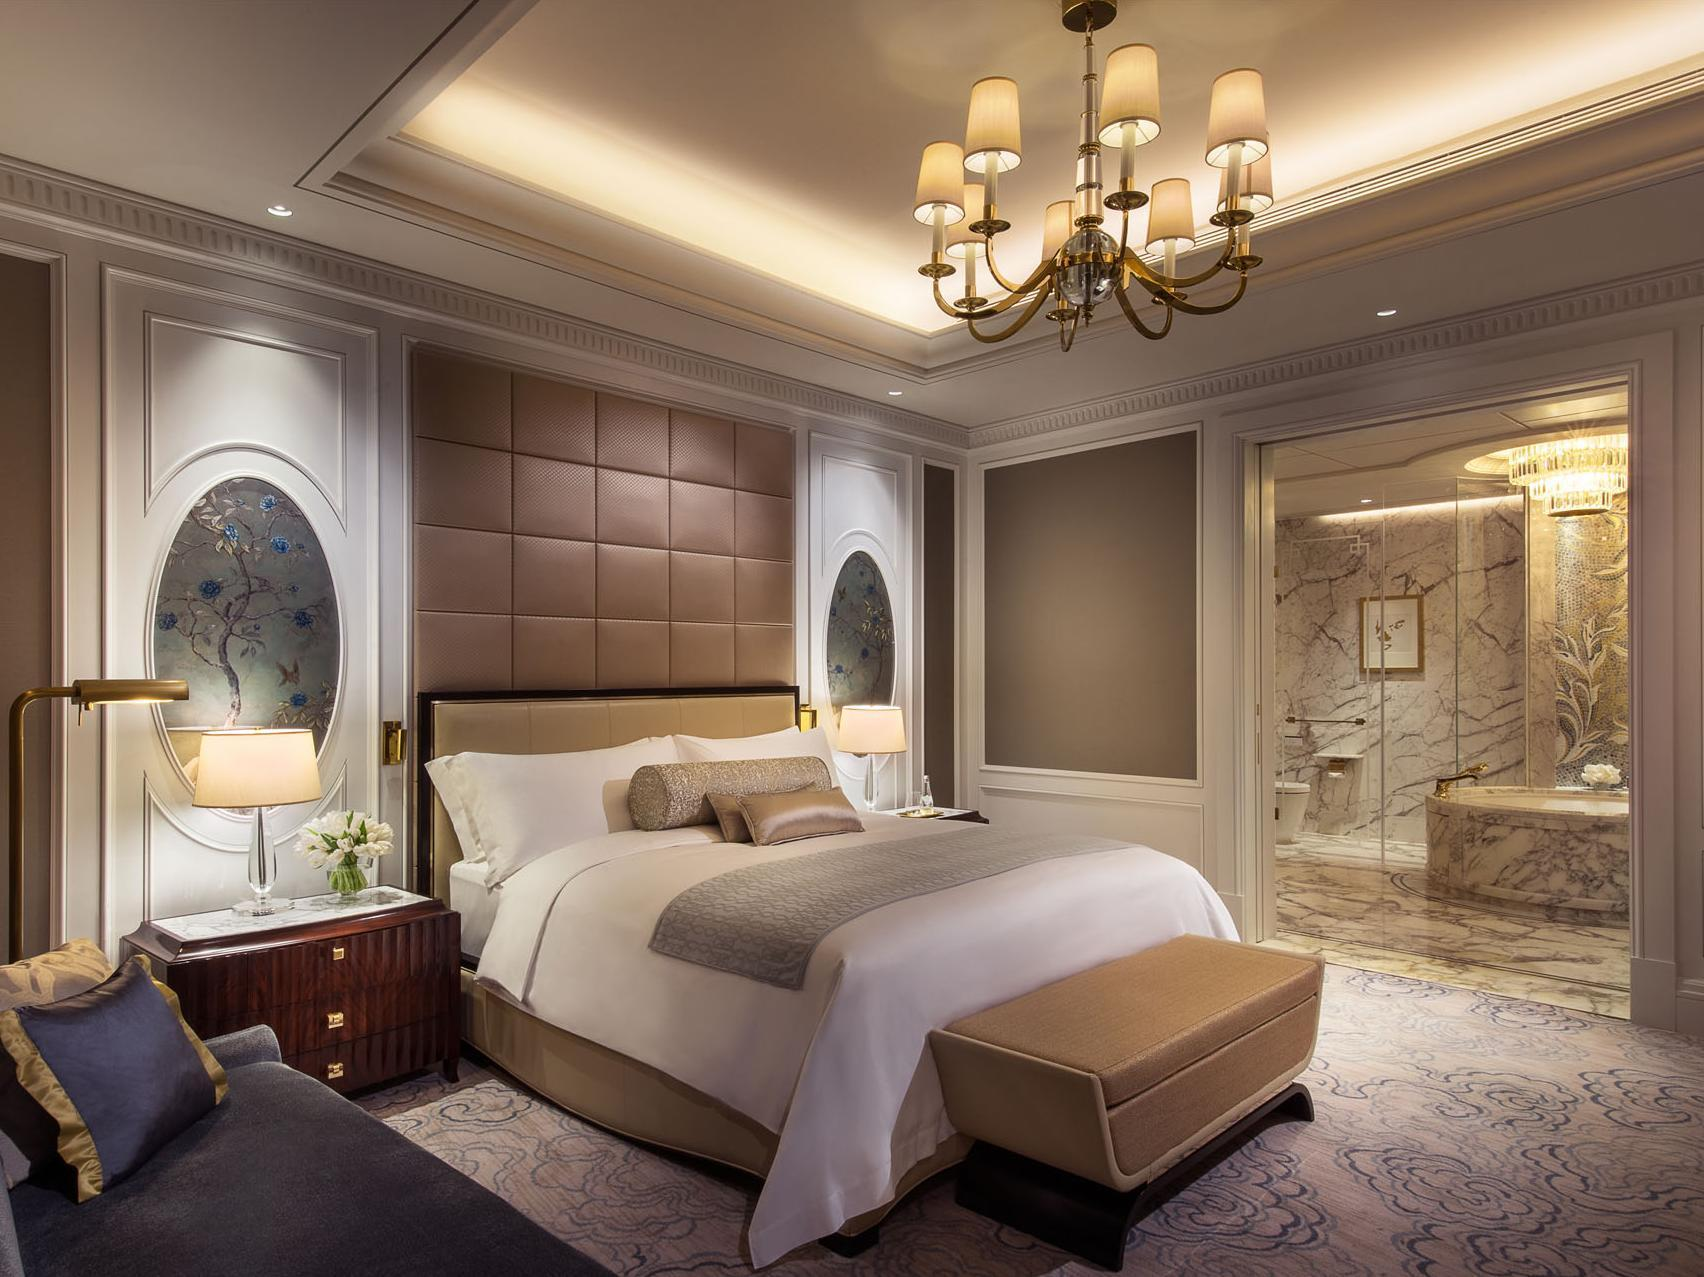 市景房(特大床) (Guest room, 1 King, City view)